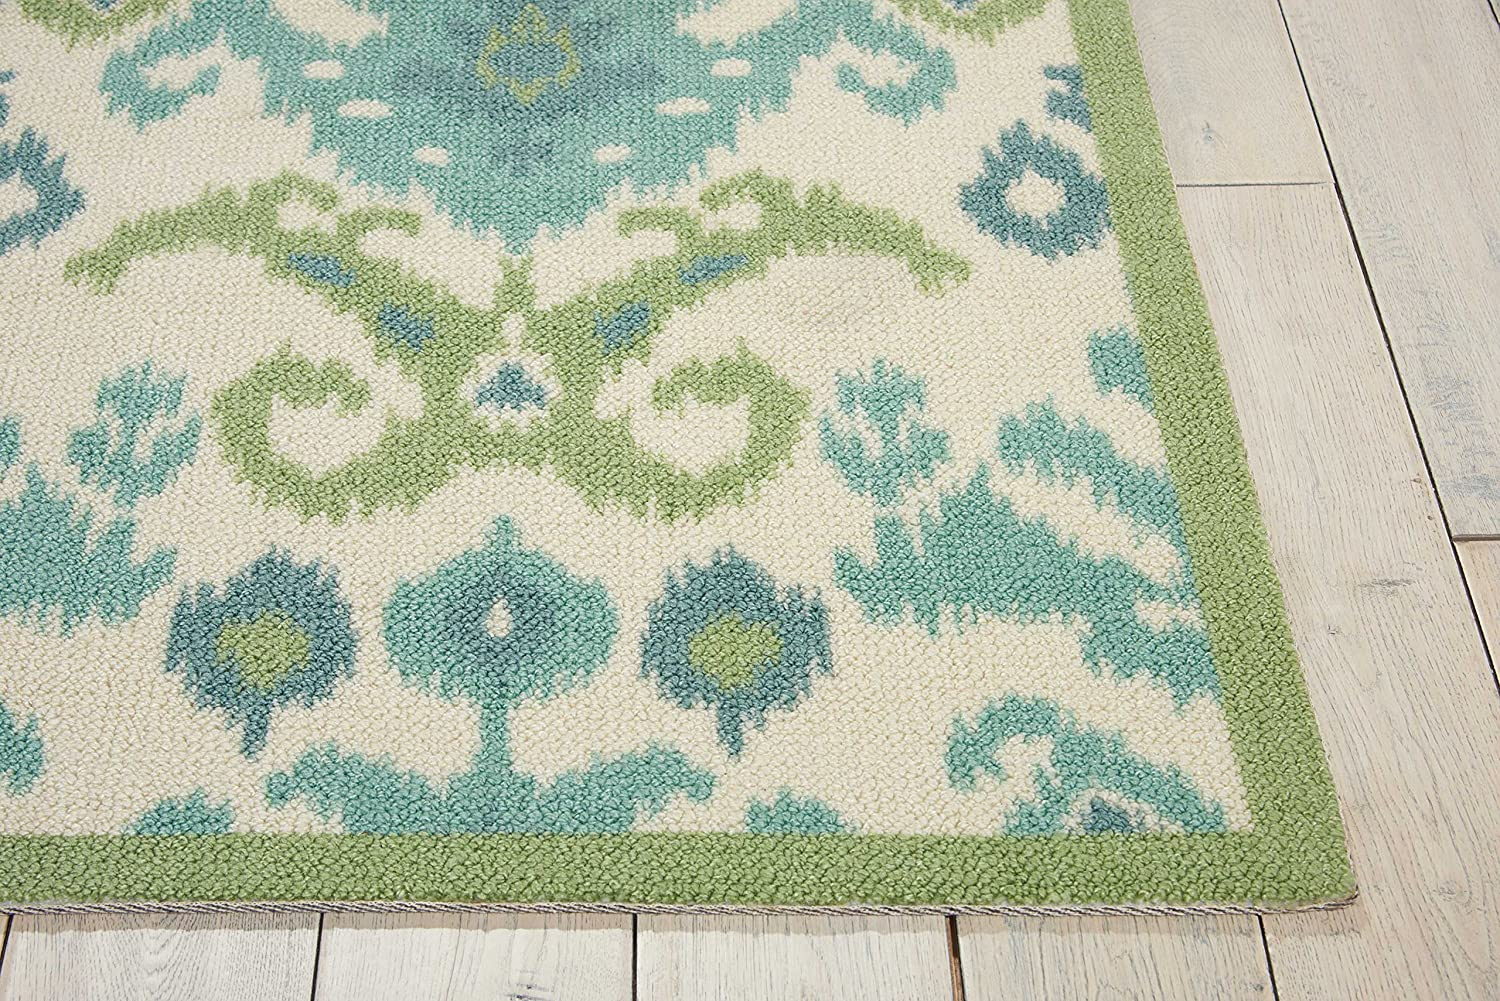 Nourison Vista 2-Feet 6-Inches by 8-Feet 26 x 8 VIS20 2/'6 x 8/' Ivory Runner Area Rug 2-Feet 6-Inches by 8-Feet